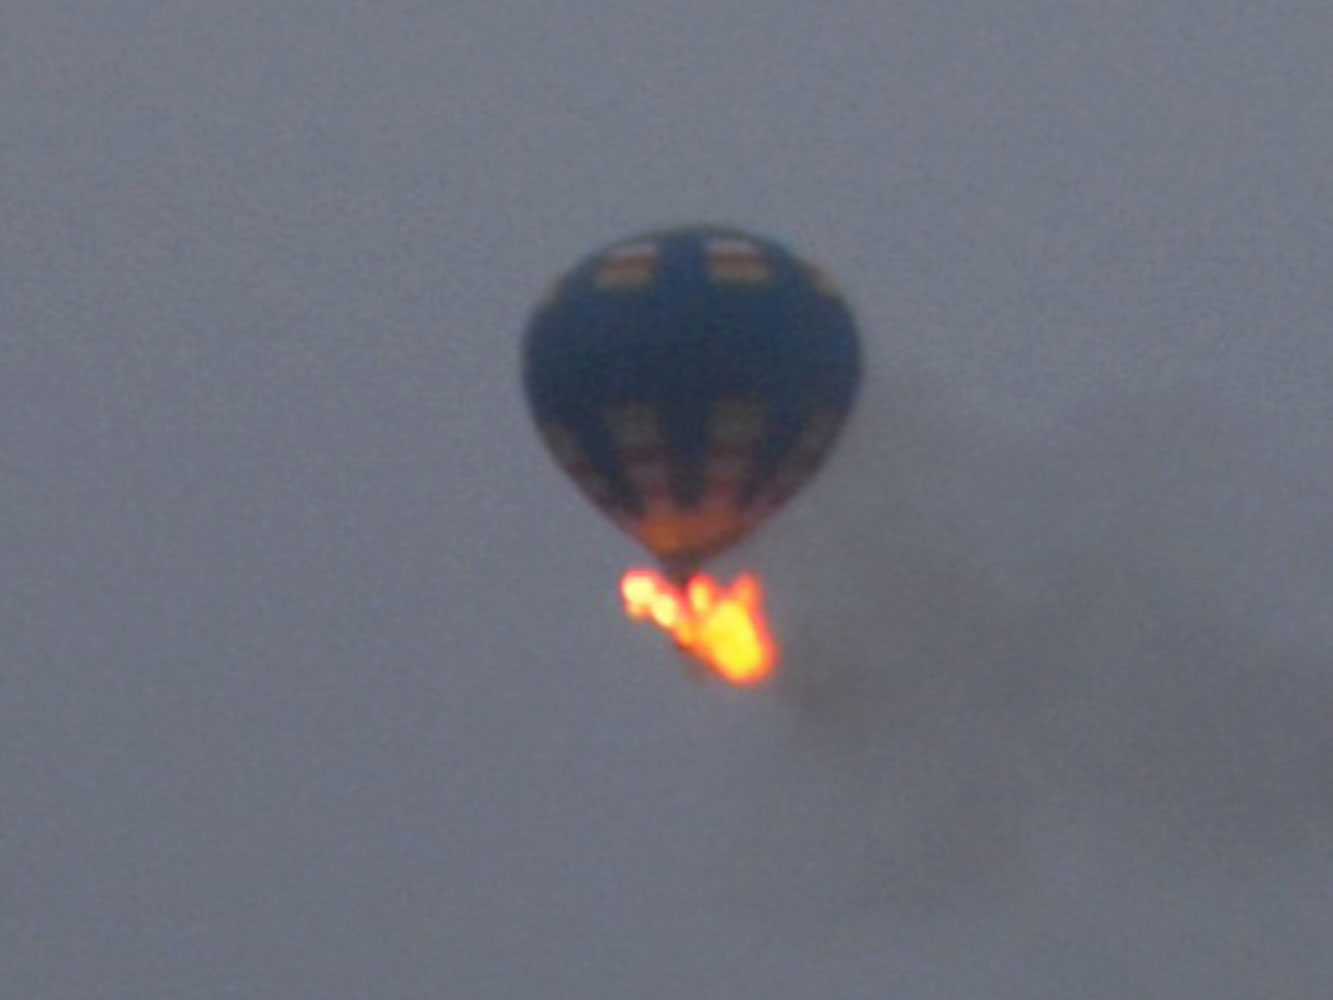 A hot-air balloon that was believed to have caught fire and crashed in Virginia, on May 10, 2014.